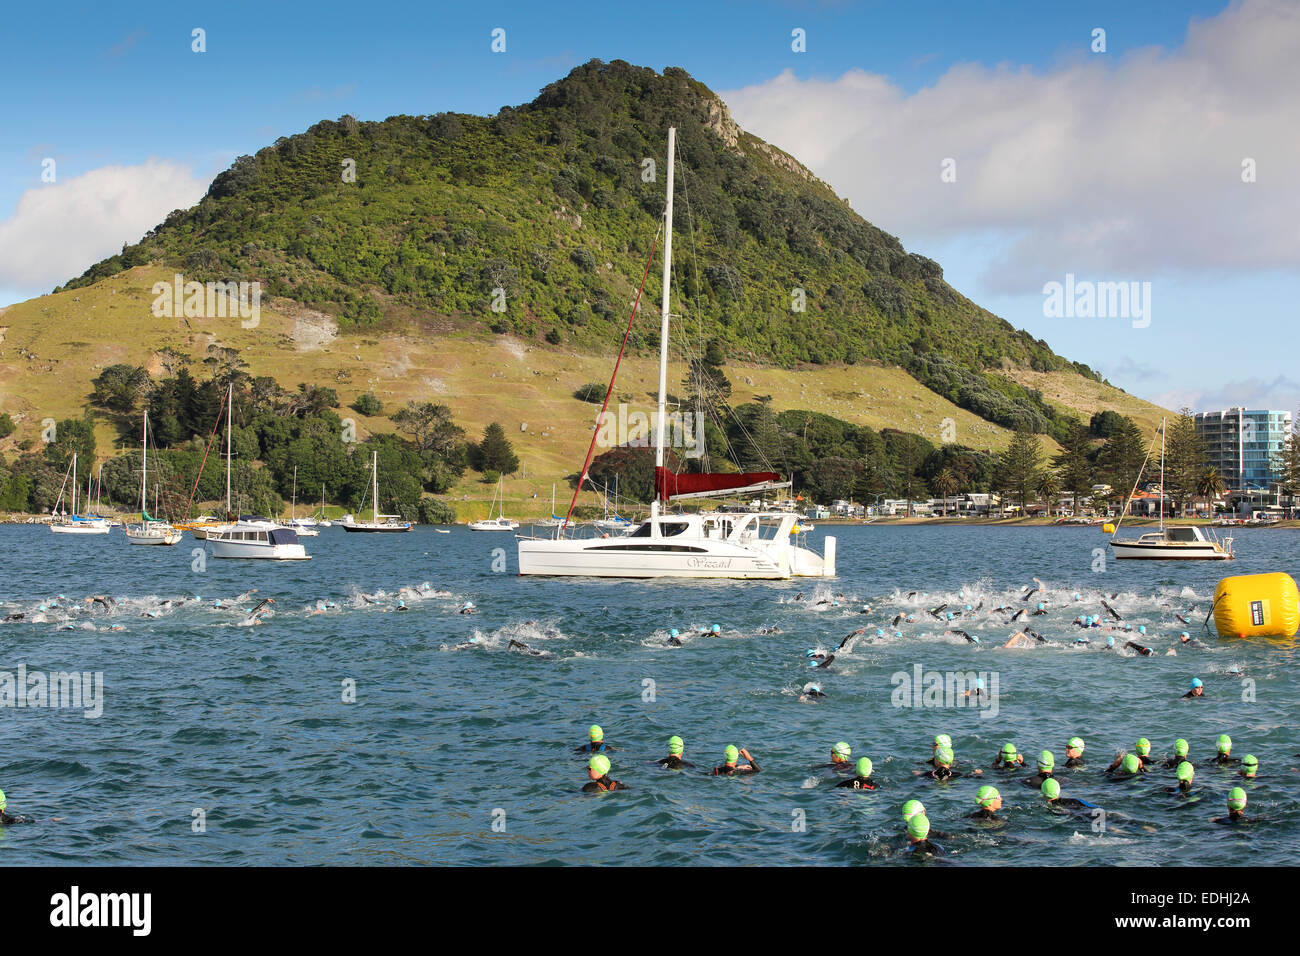 Swimmers in triathlon race at Mount Maunganui, New Zealand - Stock Image